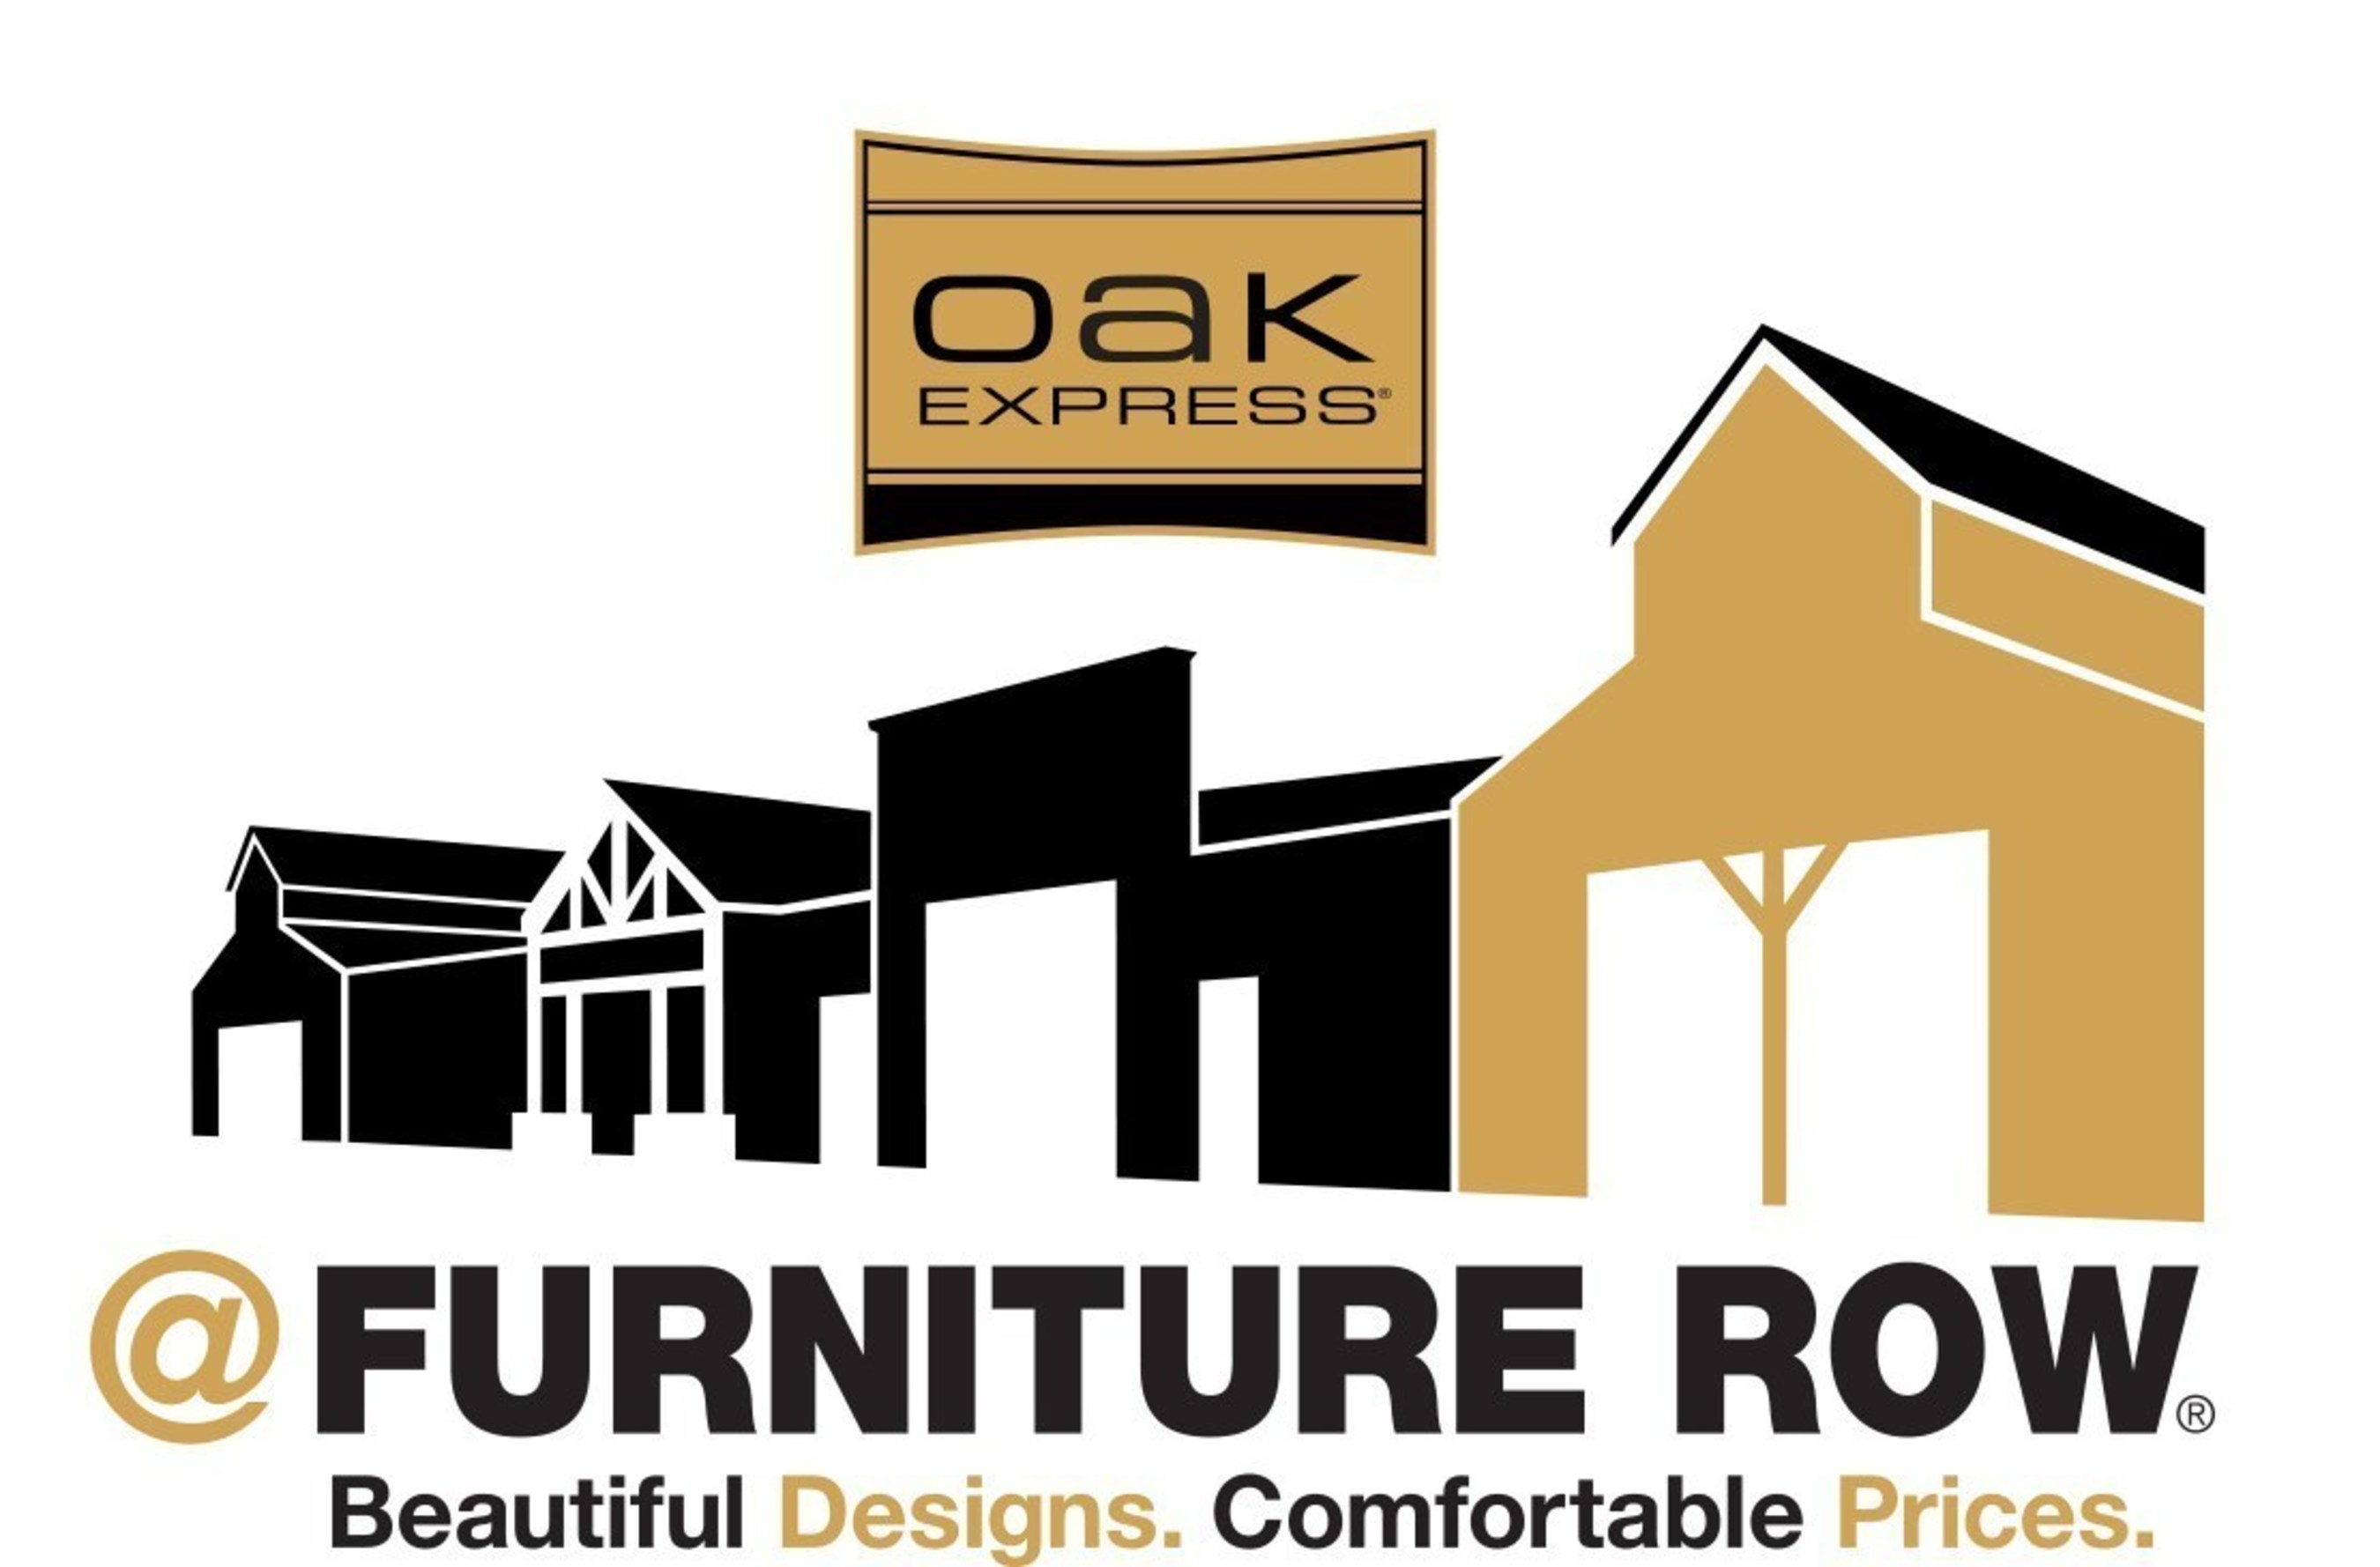 Oak Express @ Furniture Row.  Beautiful Designs.  Comfortable Prices.